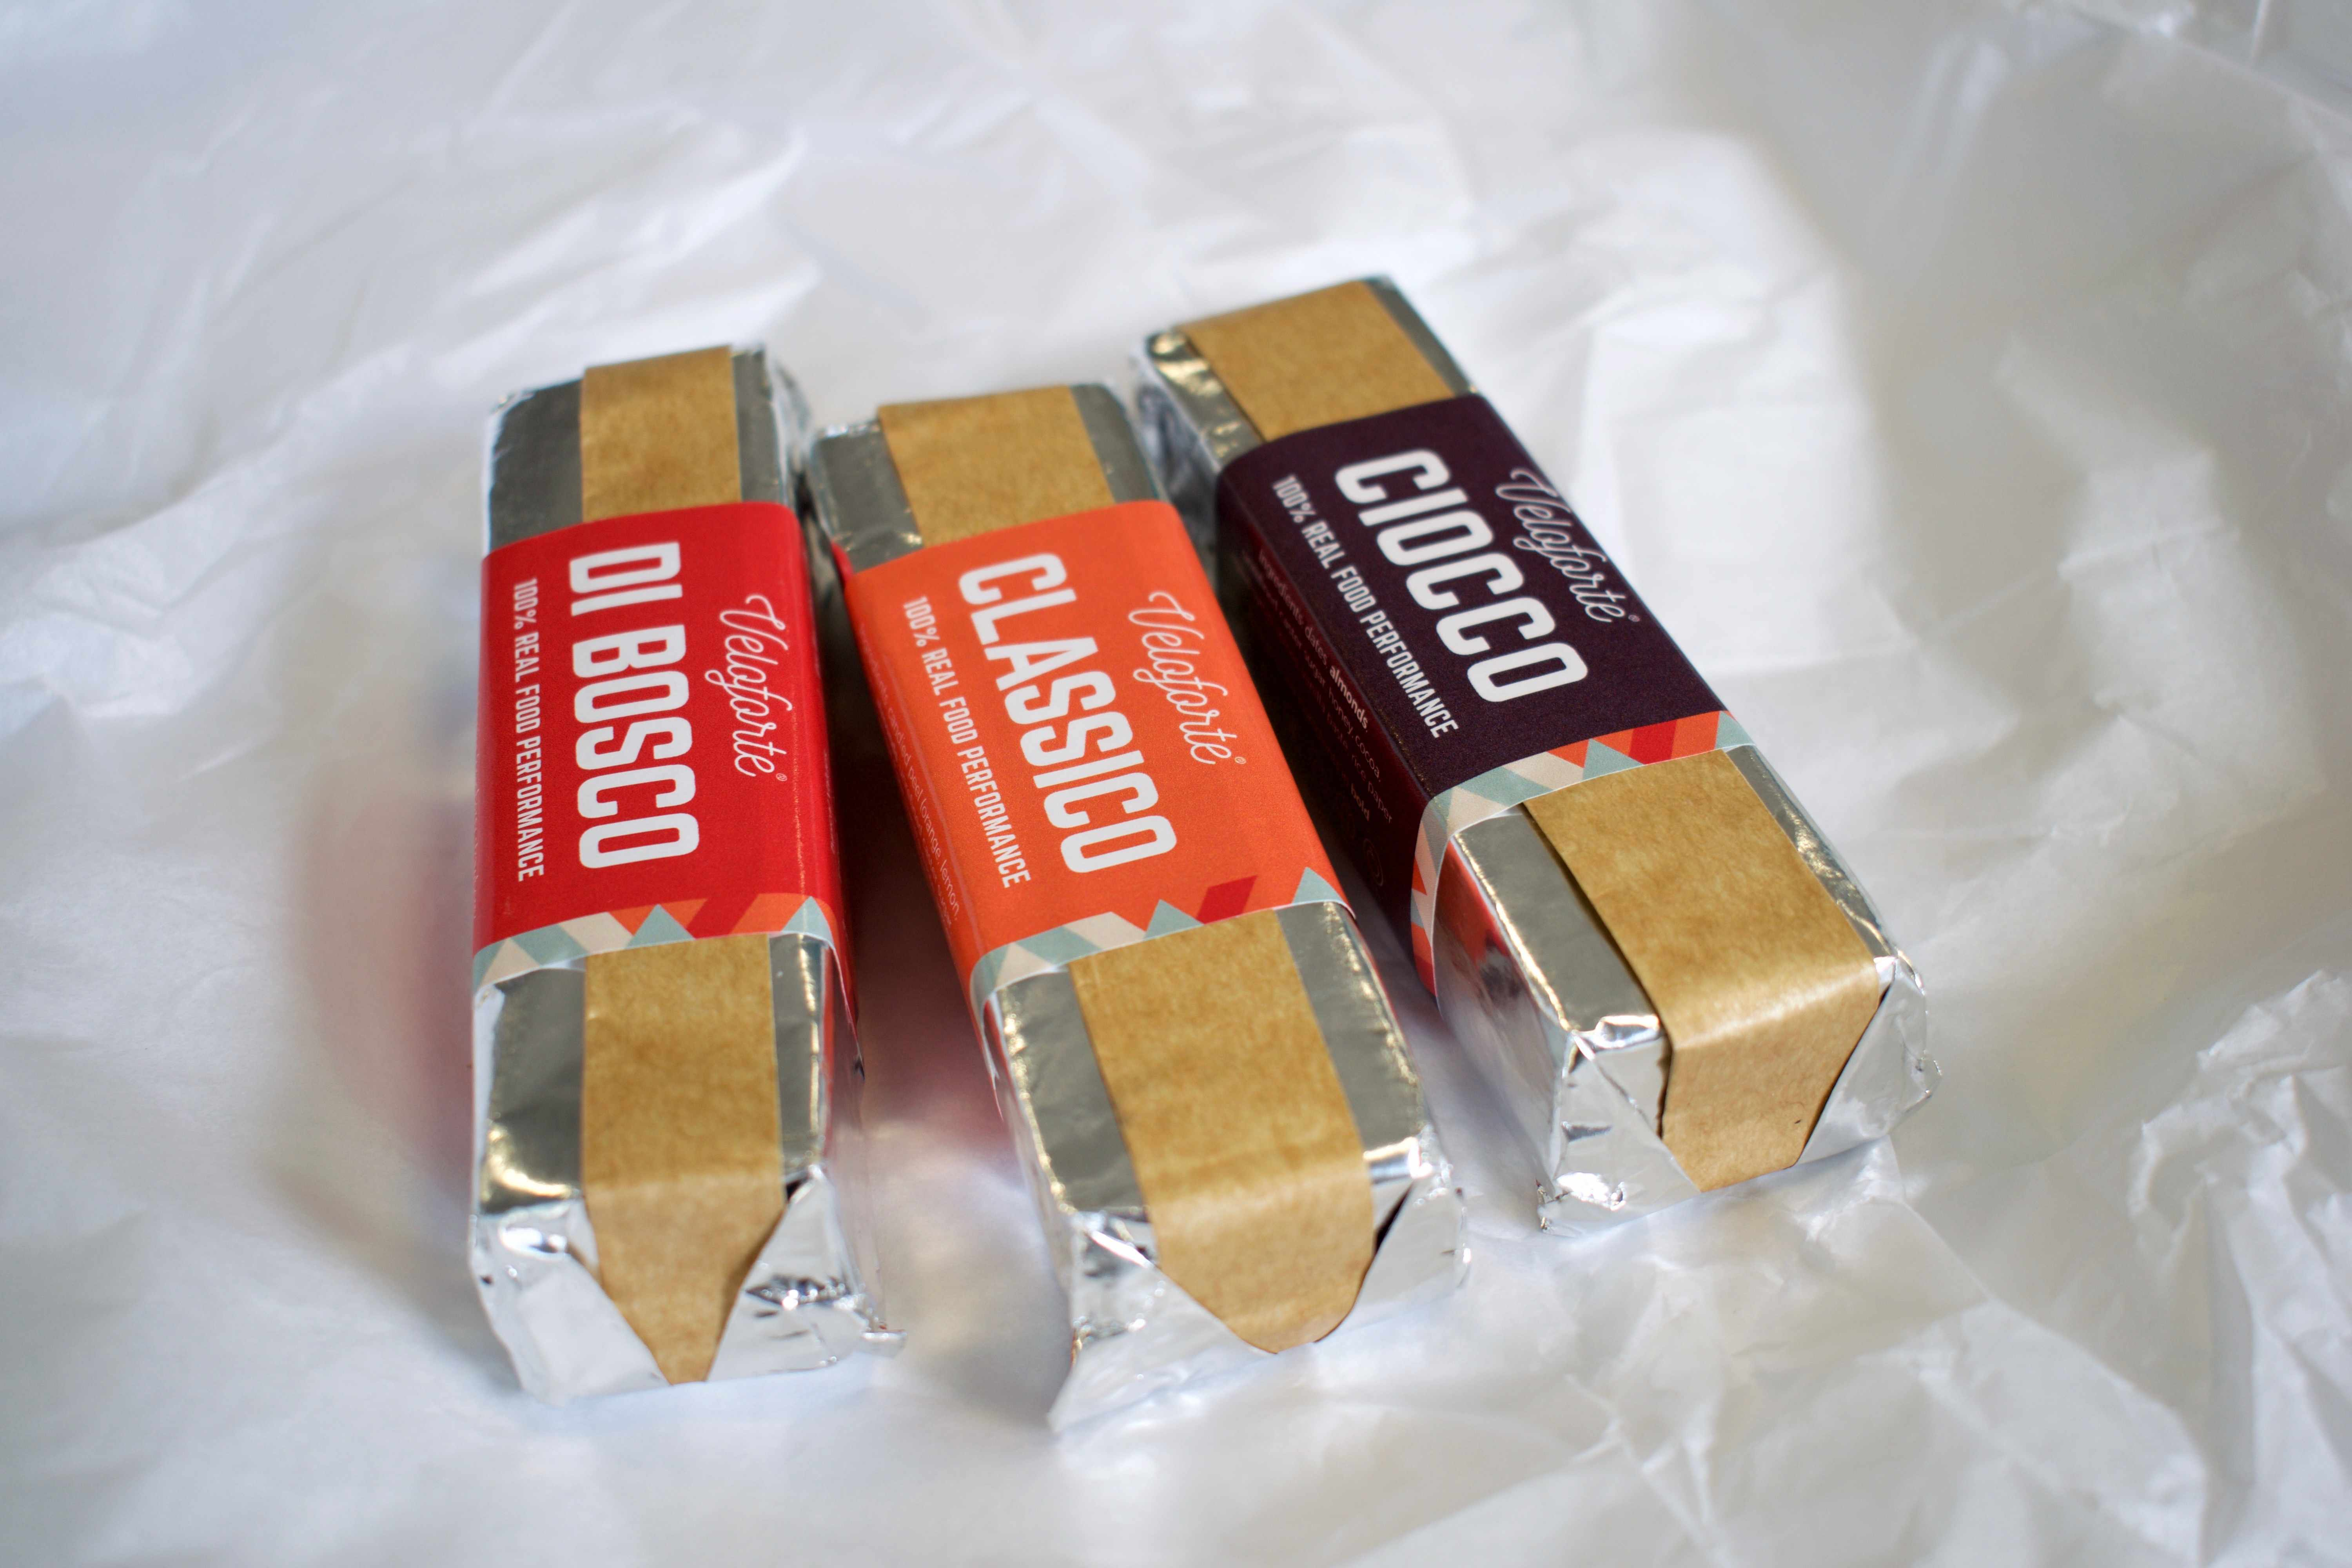 Veloforte's natural and delicious hand-made energy bars